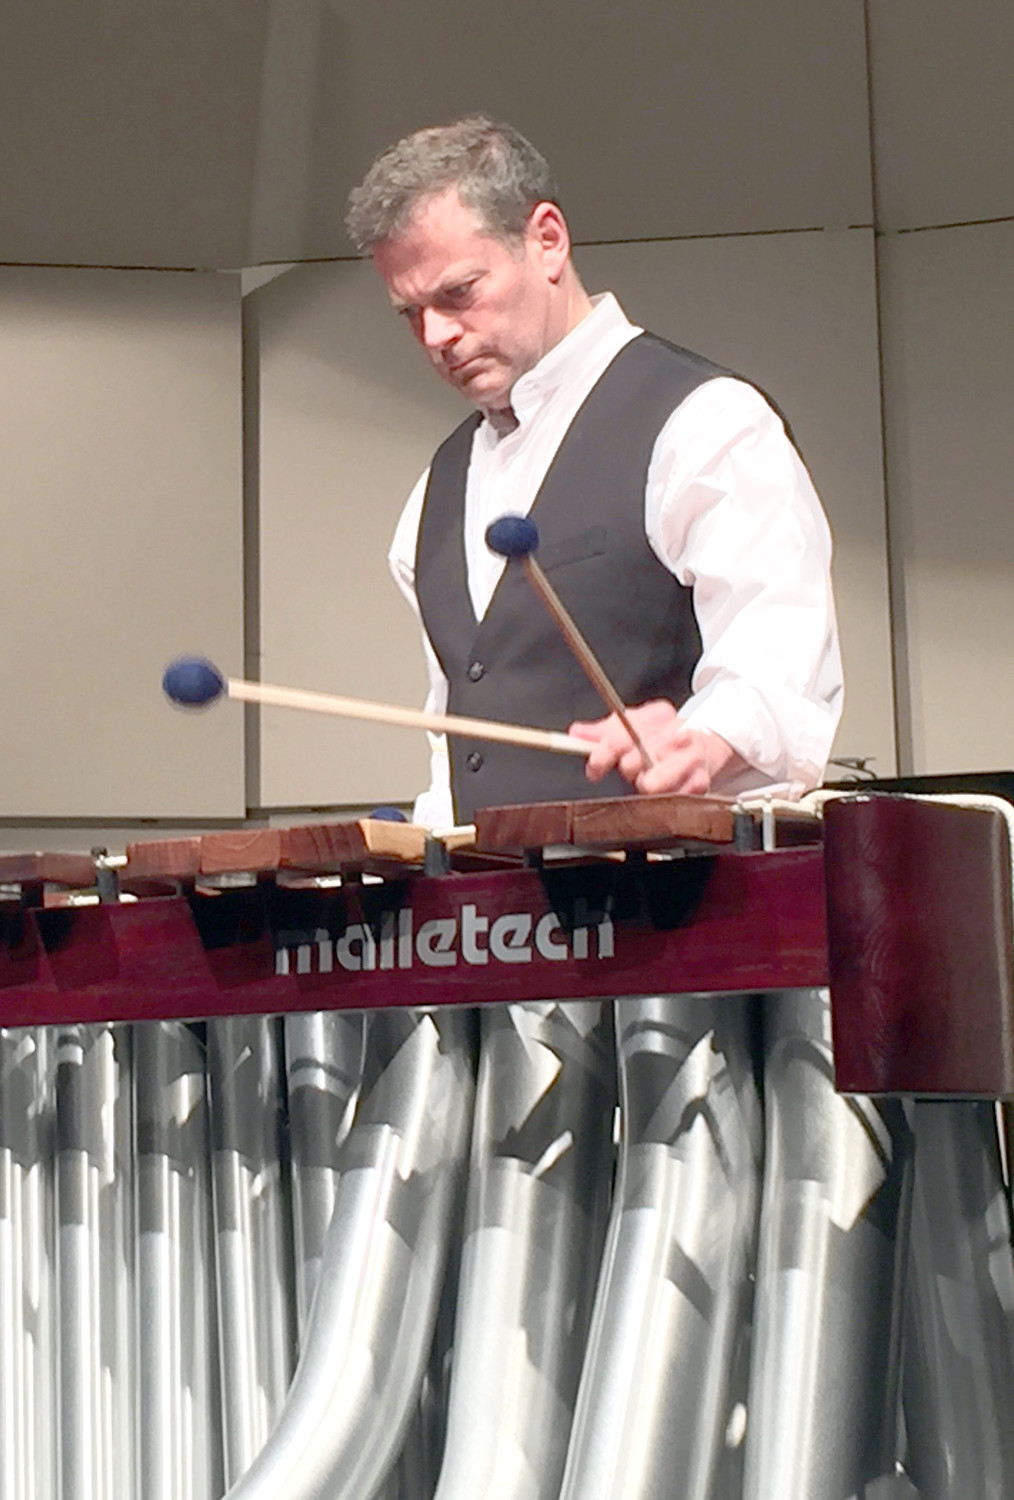 Lee Professor Dr. Andy Harnsberger is a percussionist, and can play a variety of different instruments. He says he's always been interested in music, and really started his musical career in sixth grade, after receiving a drum set.